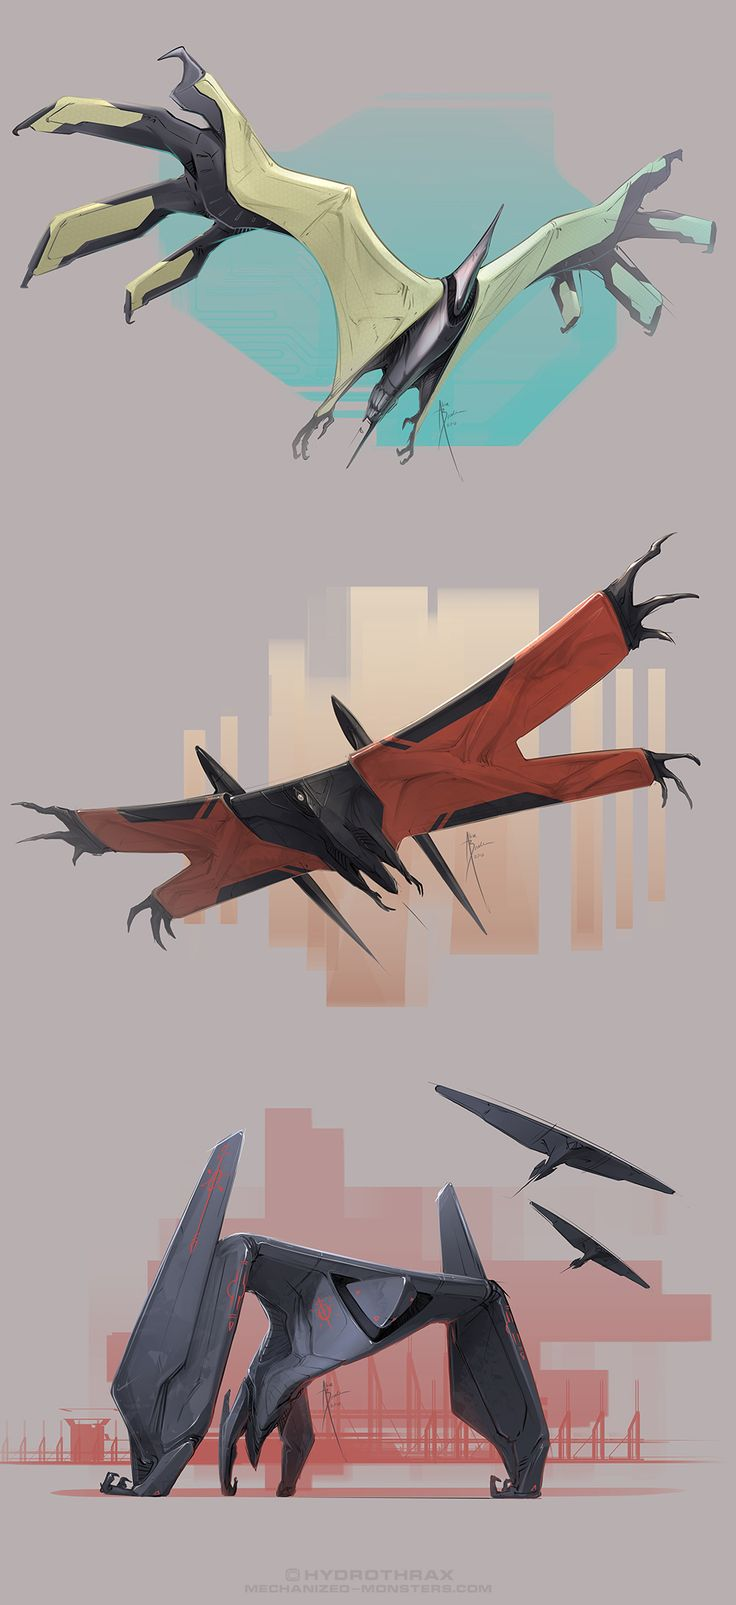 Wingy Things by Hydrothrax on DeviantArt